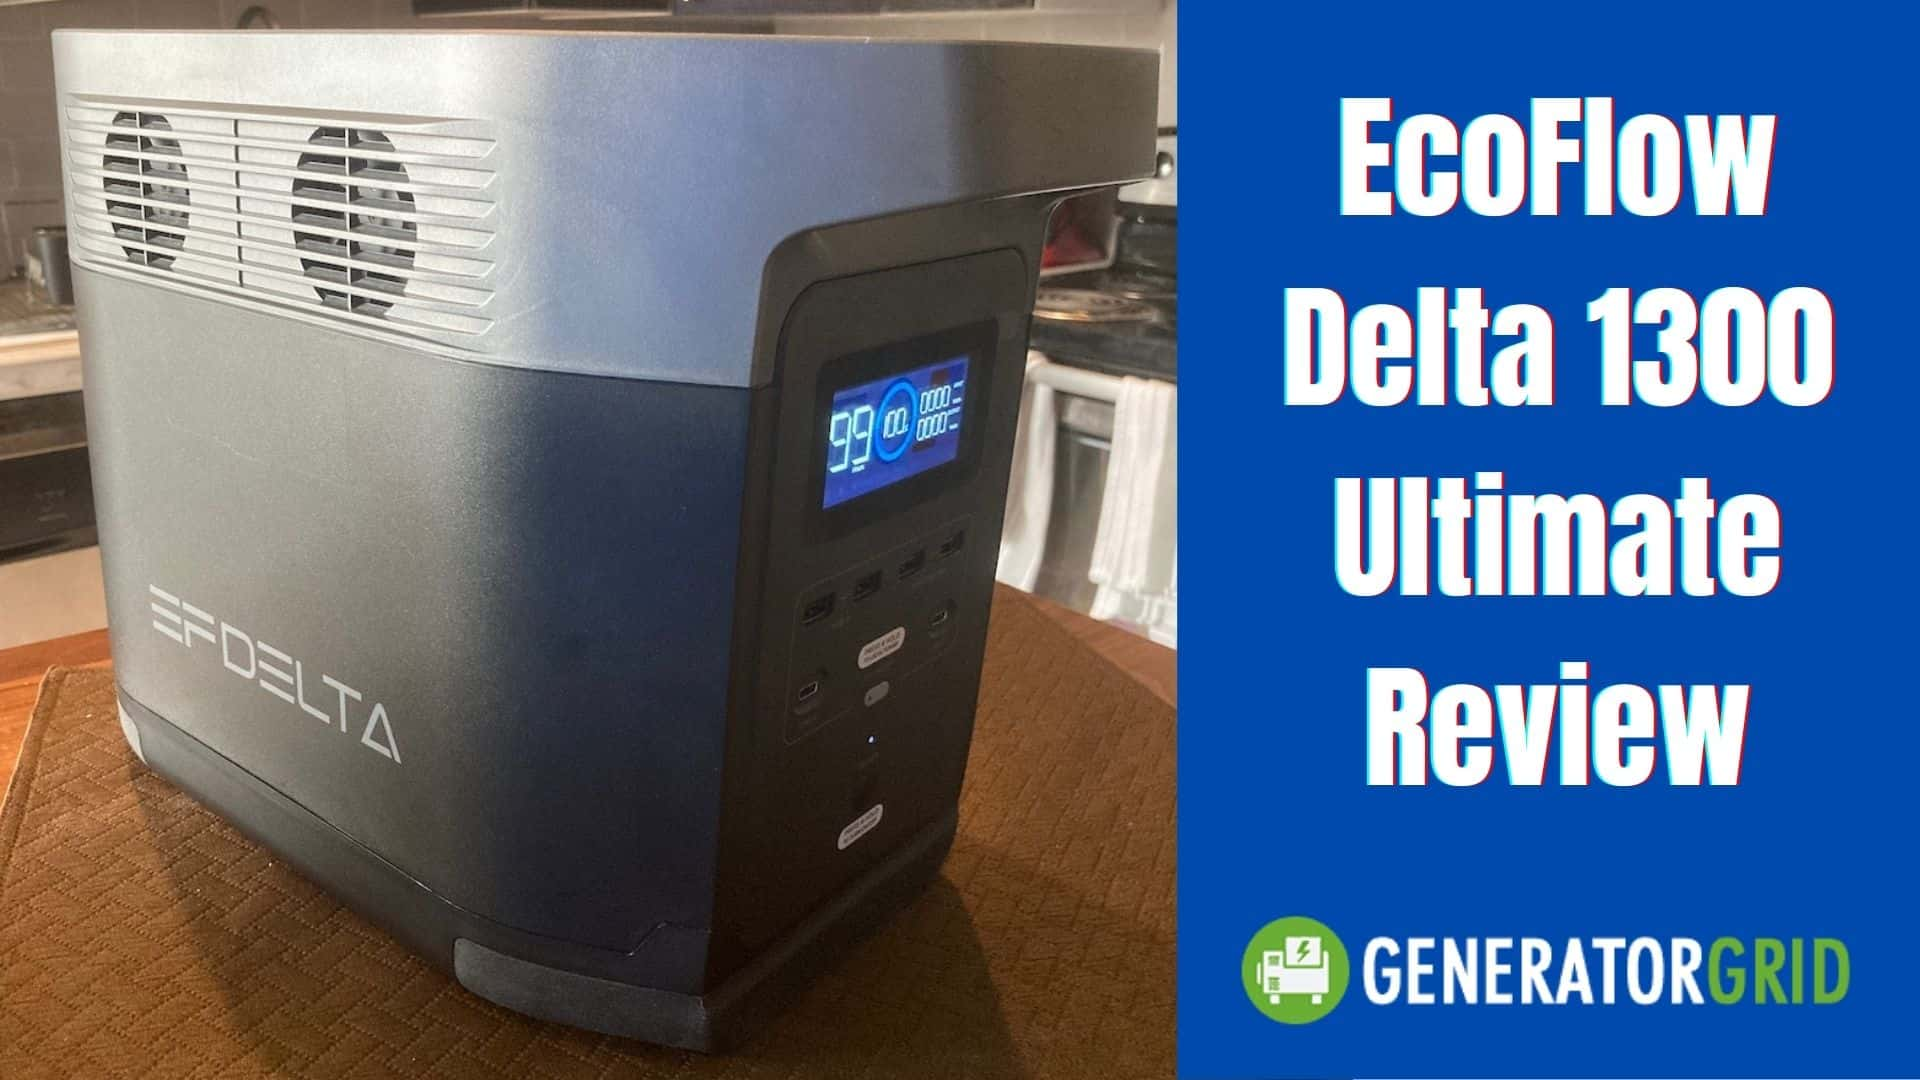 EcoFlow Delta 1300 - My Review